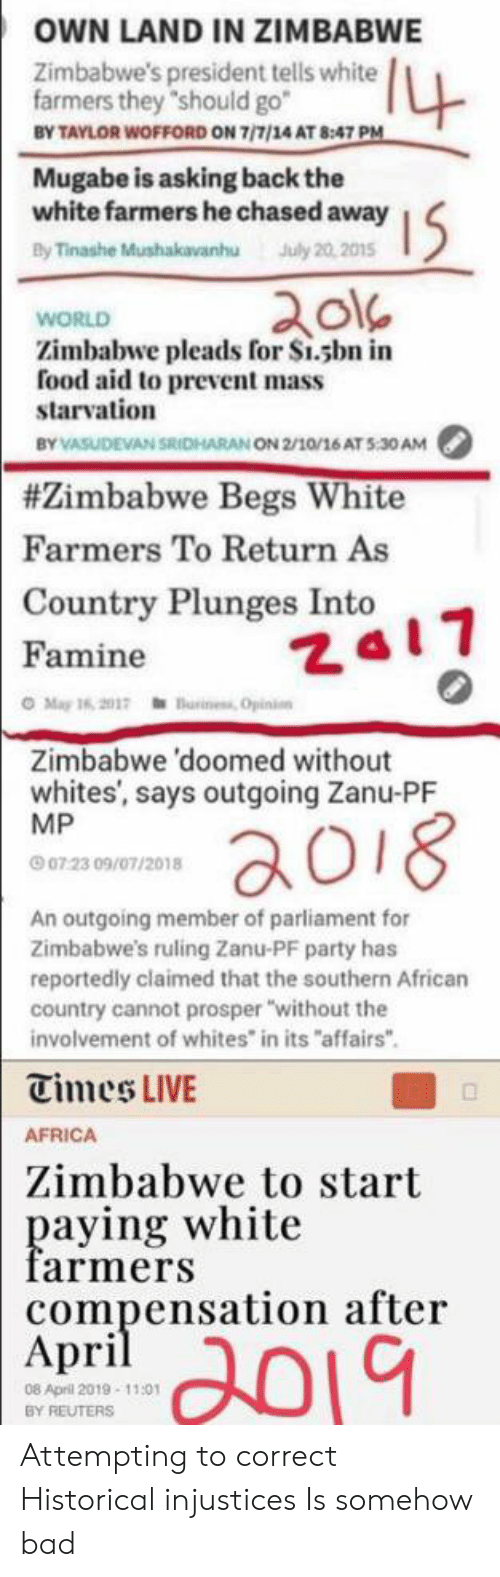 """mugabe: OWN LAND IN ZIMBABWE  4  Zimbabwe's president tells white  farmers they """"should go  BY TAYLOR WOFFORD ON 7/7/14 AT 8:47 PM  Mugabe is asking back the  white farmers he chased away  By Tinashe Mushakavanhu July 20,2015  WORLD  Zimbabwe pleads for Si.sbn in  food aid to prevent mass  starvation  BY VASUDEVAN SRIDHARAN ON 2/10/16 AT 5:30 AM  #Zimbabwe Begs White  Farmers To Return As  Country Plunges Into  ZA17  Famine  O May 16, 2017  ness Opinio  Zimbabwe 'doomed without  whites', says outgoing Zanu-PF  MP  ao18  0723 09/07/2018  An outgoing member of parliament for  Zimbabwe's ruling Zanu-PF party has  reportedly claimed that the southern African  country cannot prosper """"without the  involvement of whites in its """"affairs""""  Times LIVE  AFRICA  Zimbabwe to start  paying white  farmers  compensation after  April  08 April 2019 11:01  BY REUTERS Attempting to correct Historical injustices Is somehow bad"""